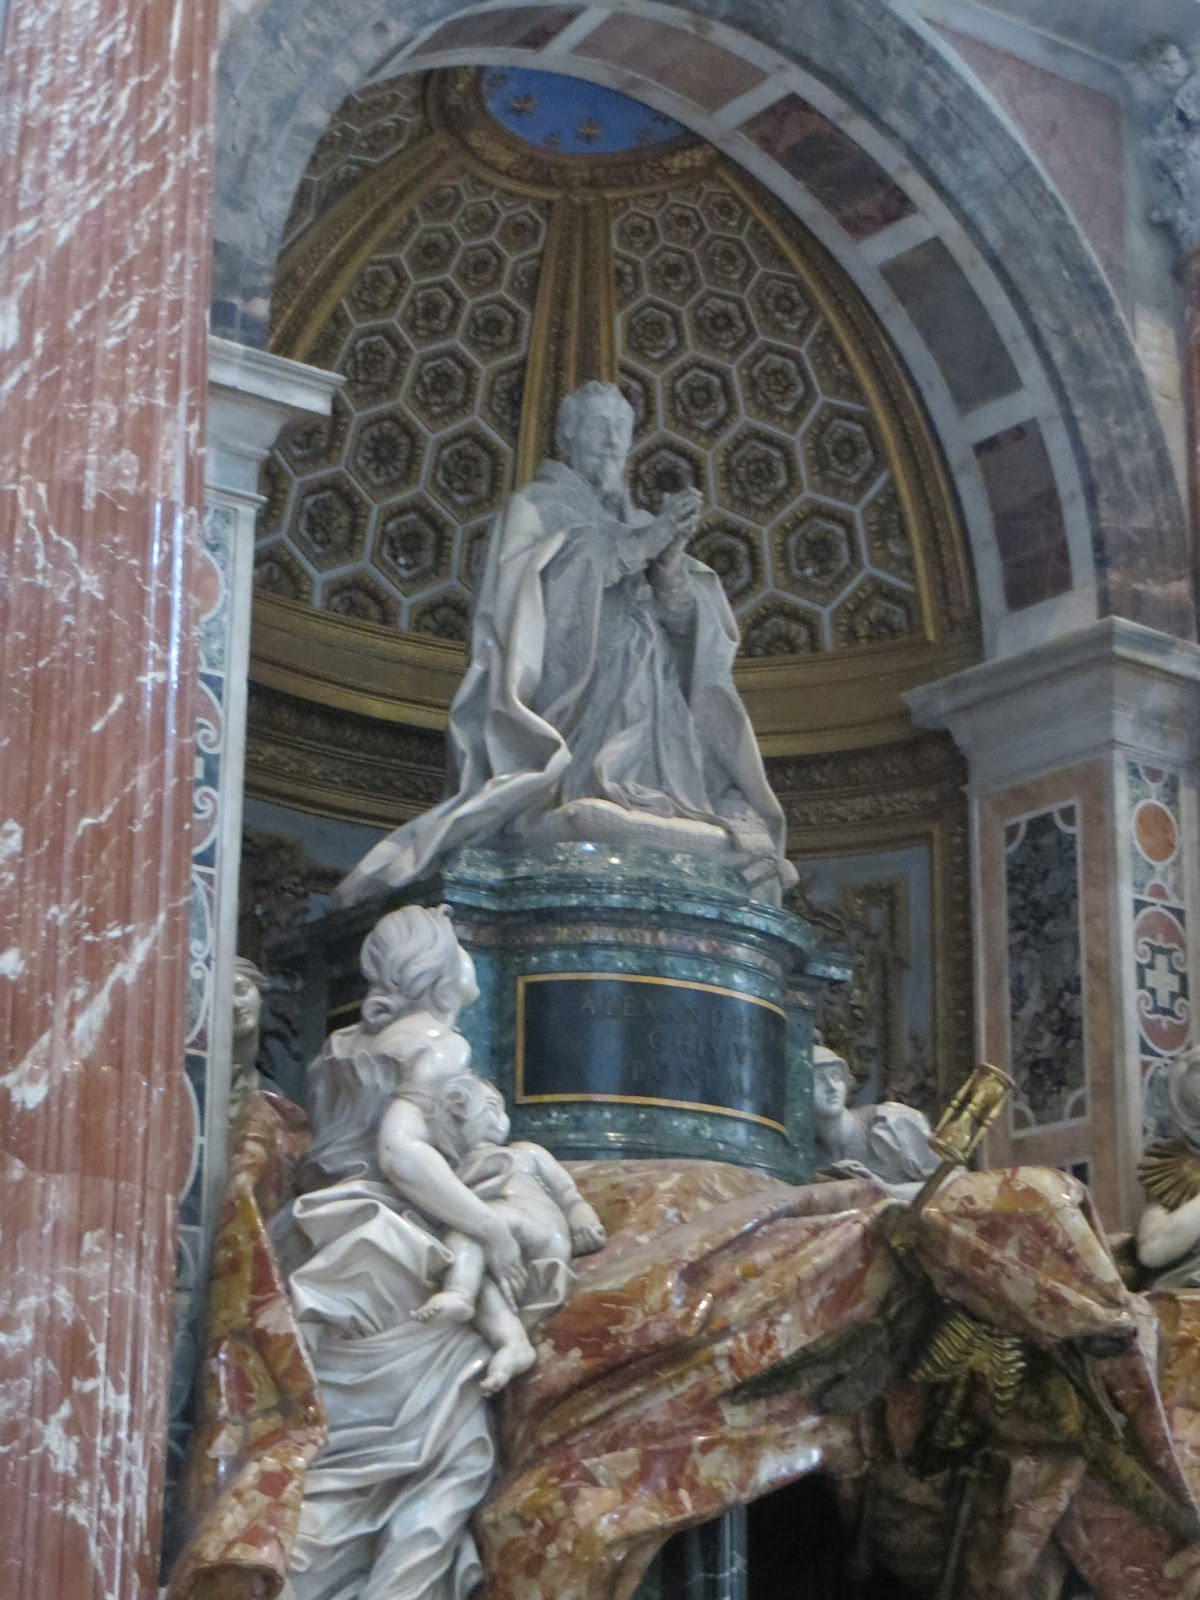 reformation rome - photo#41